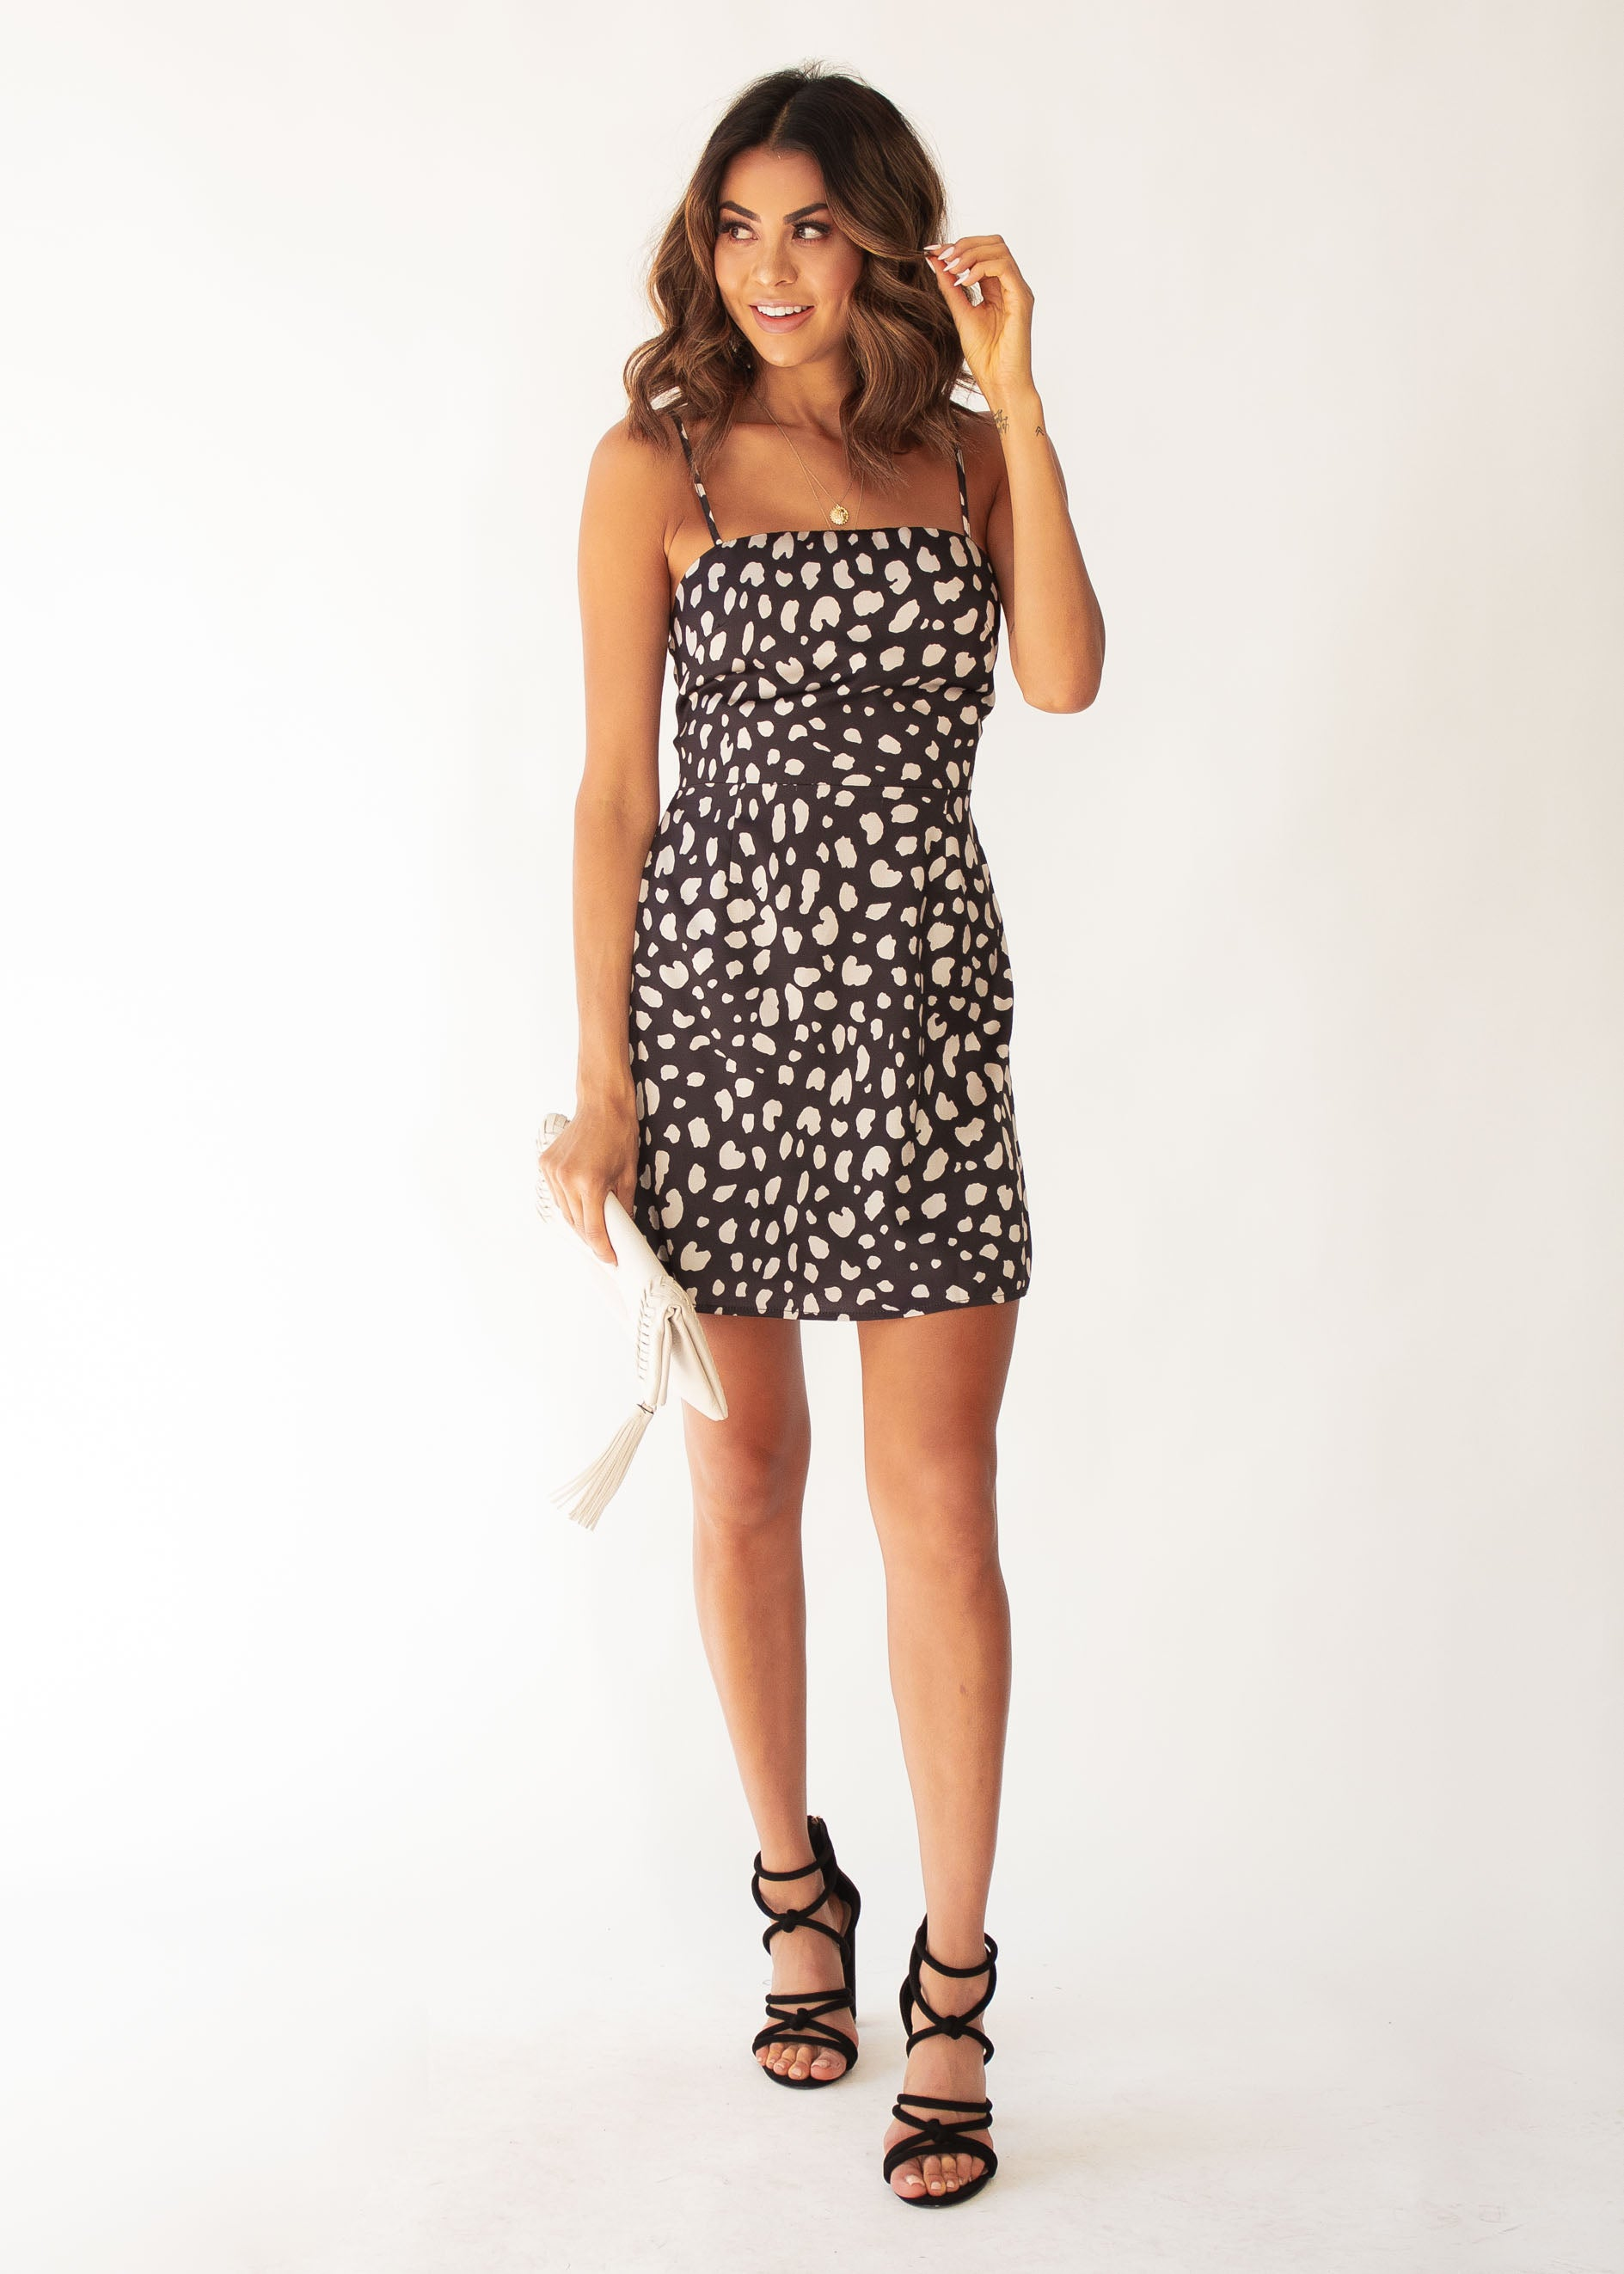 All Nighter Dress - Black Leopard